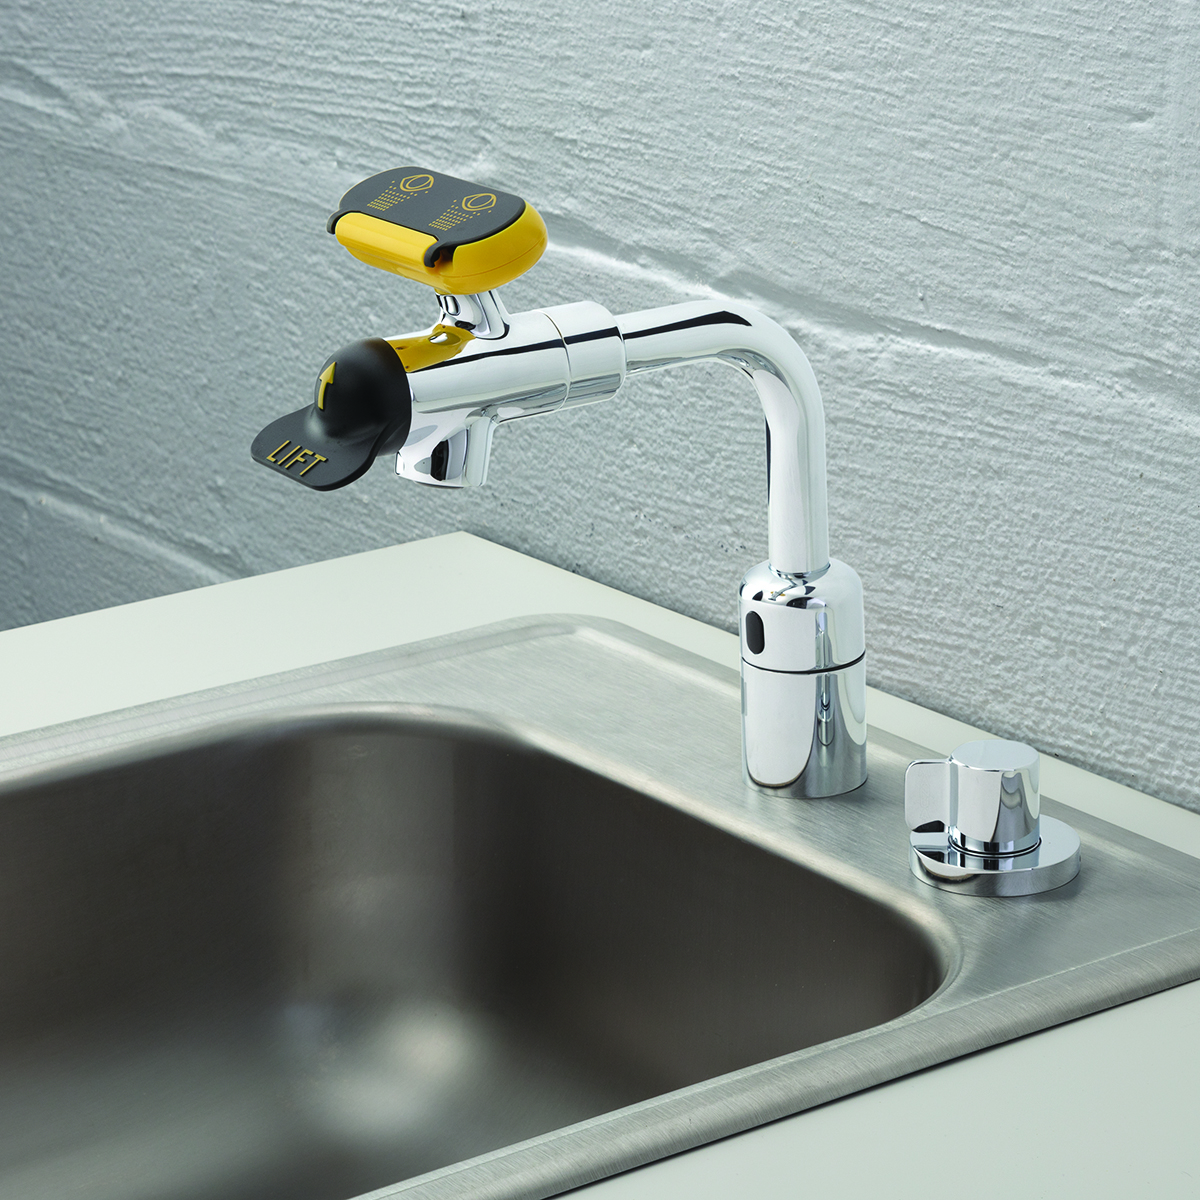 Speakman Eyesaver Sef 18207 Ac Powered Sensor Eyewash Faucet With Manual Override Speakman